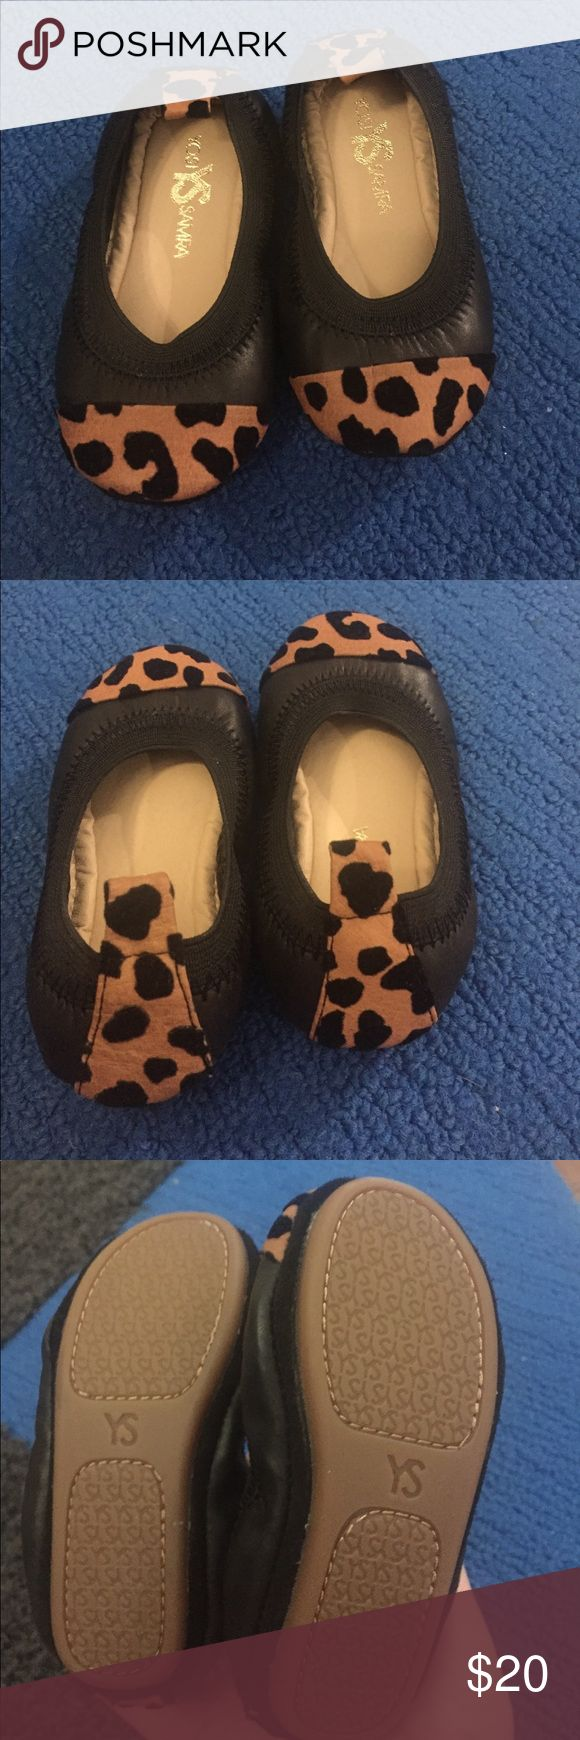 Adorable black leather toddler shoes Black leather with leopard print toe and back strip. Worn once. Great condition Yosi Samra Shoes Dress Shoes